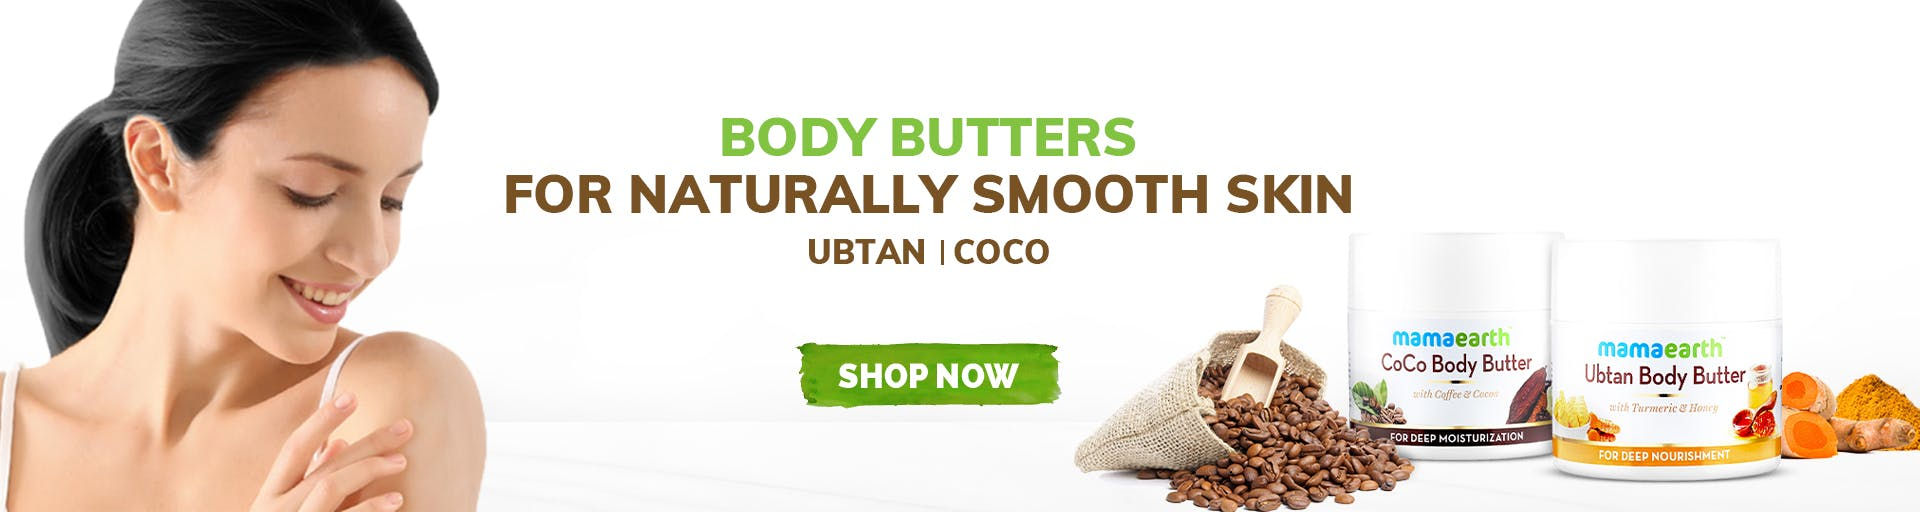 mamaearth.in - Body Butter starting at just ₹399